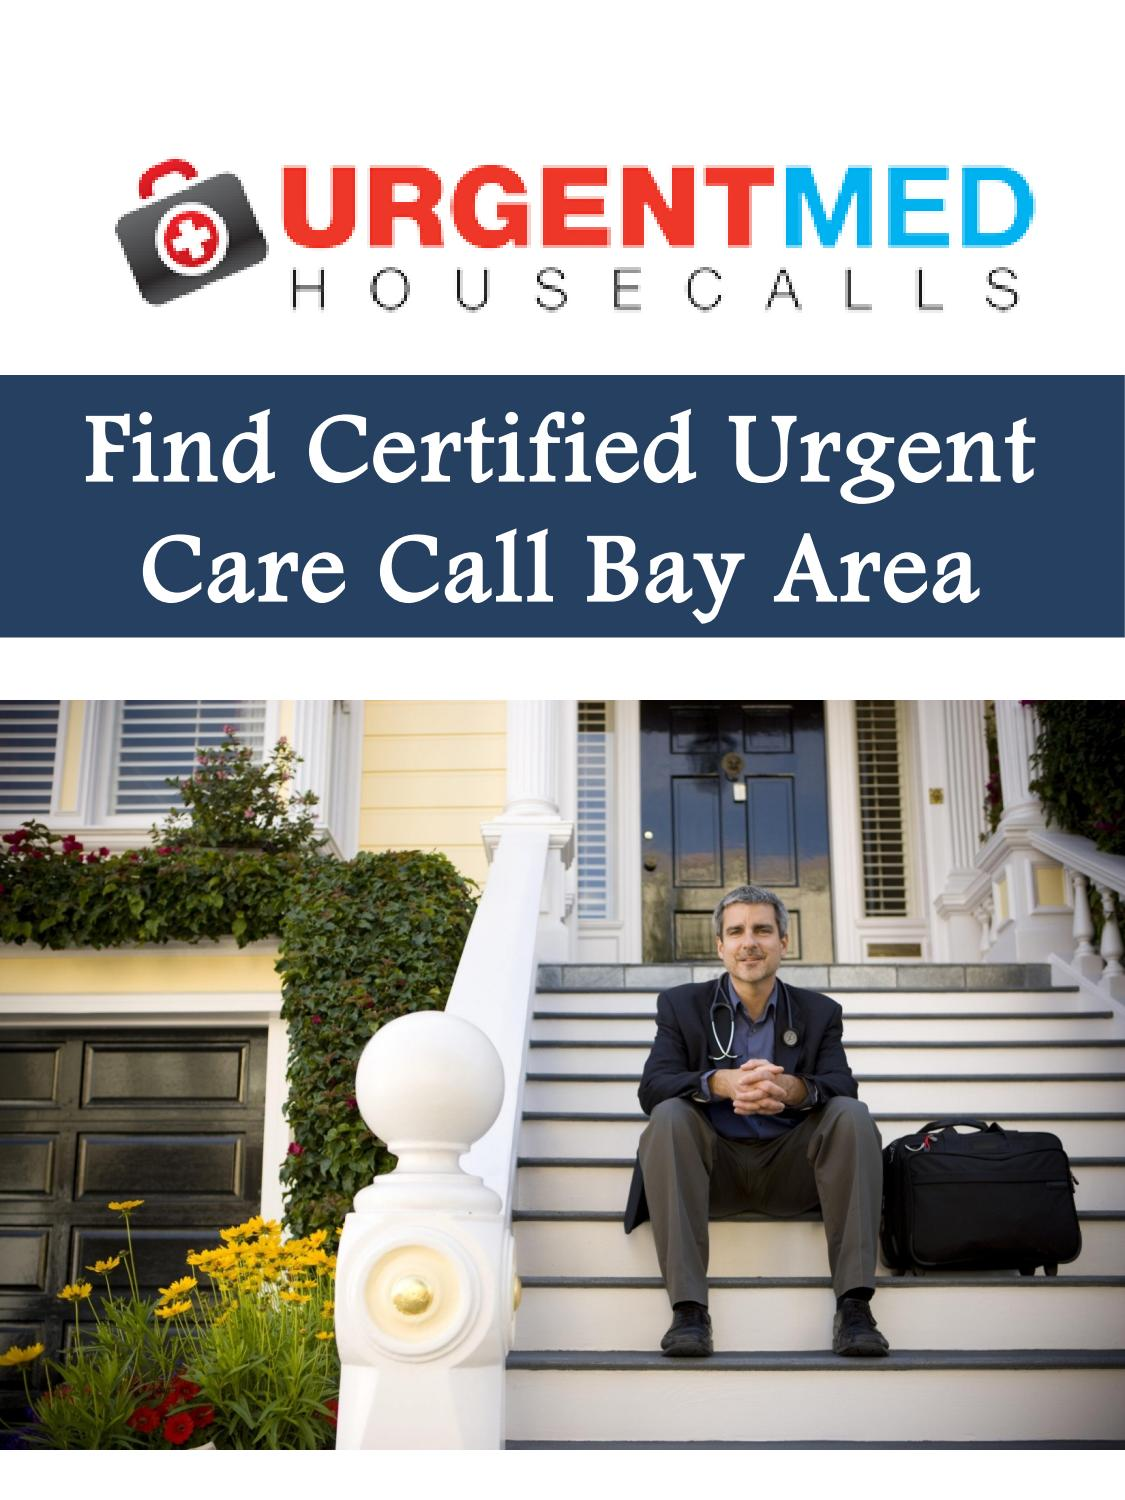 Find Certified Urgent Care Call Bay Area by